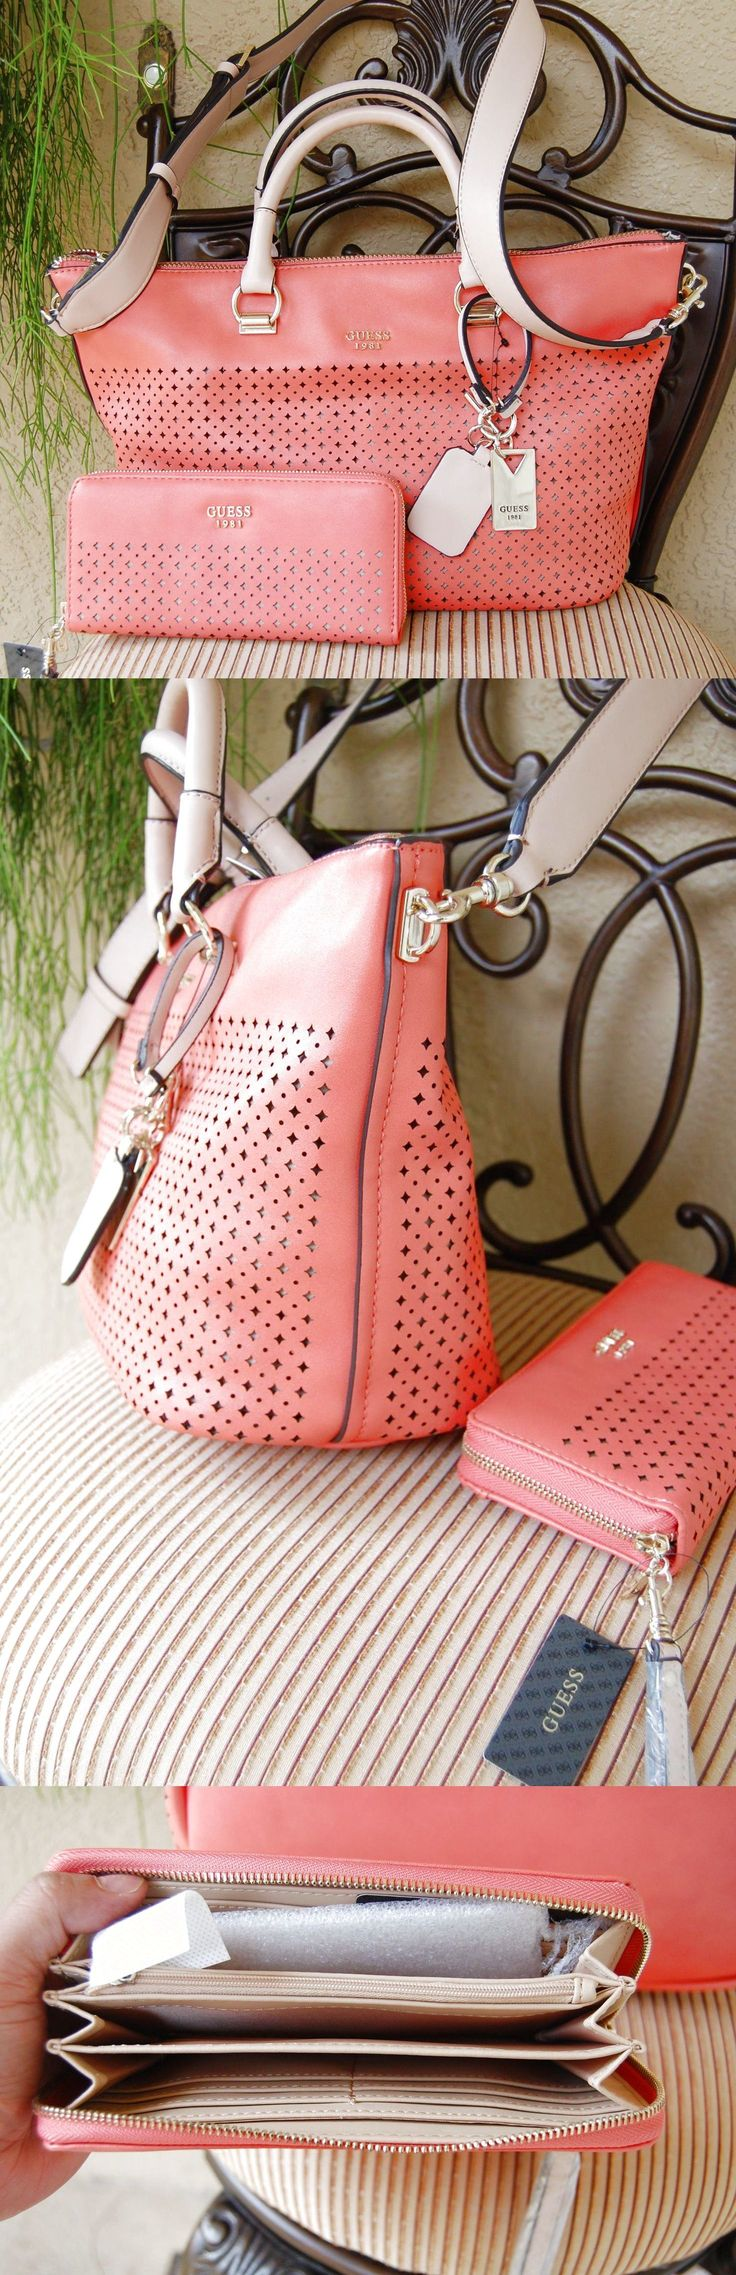 NWT Guess Juliana Satchel Handbag & Zip Around Wallet Set Color Coral $115.5